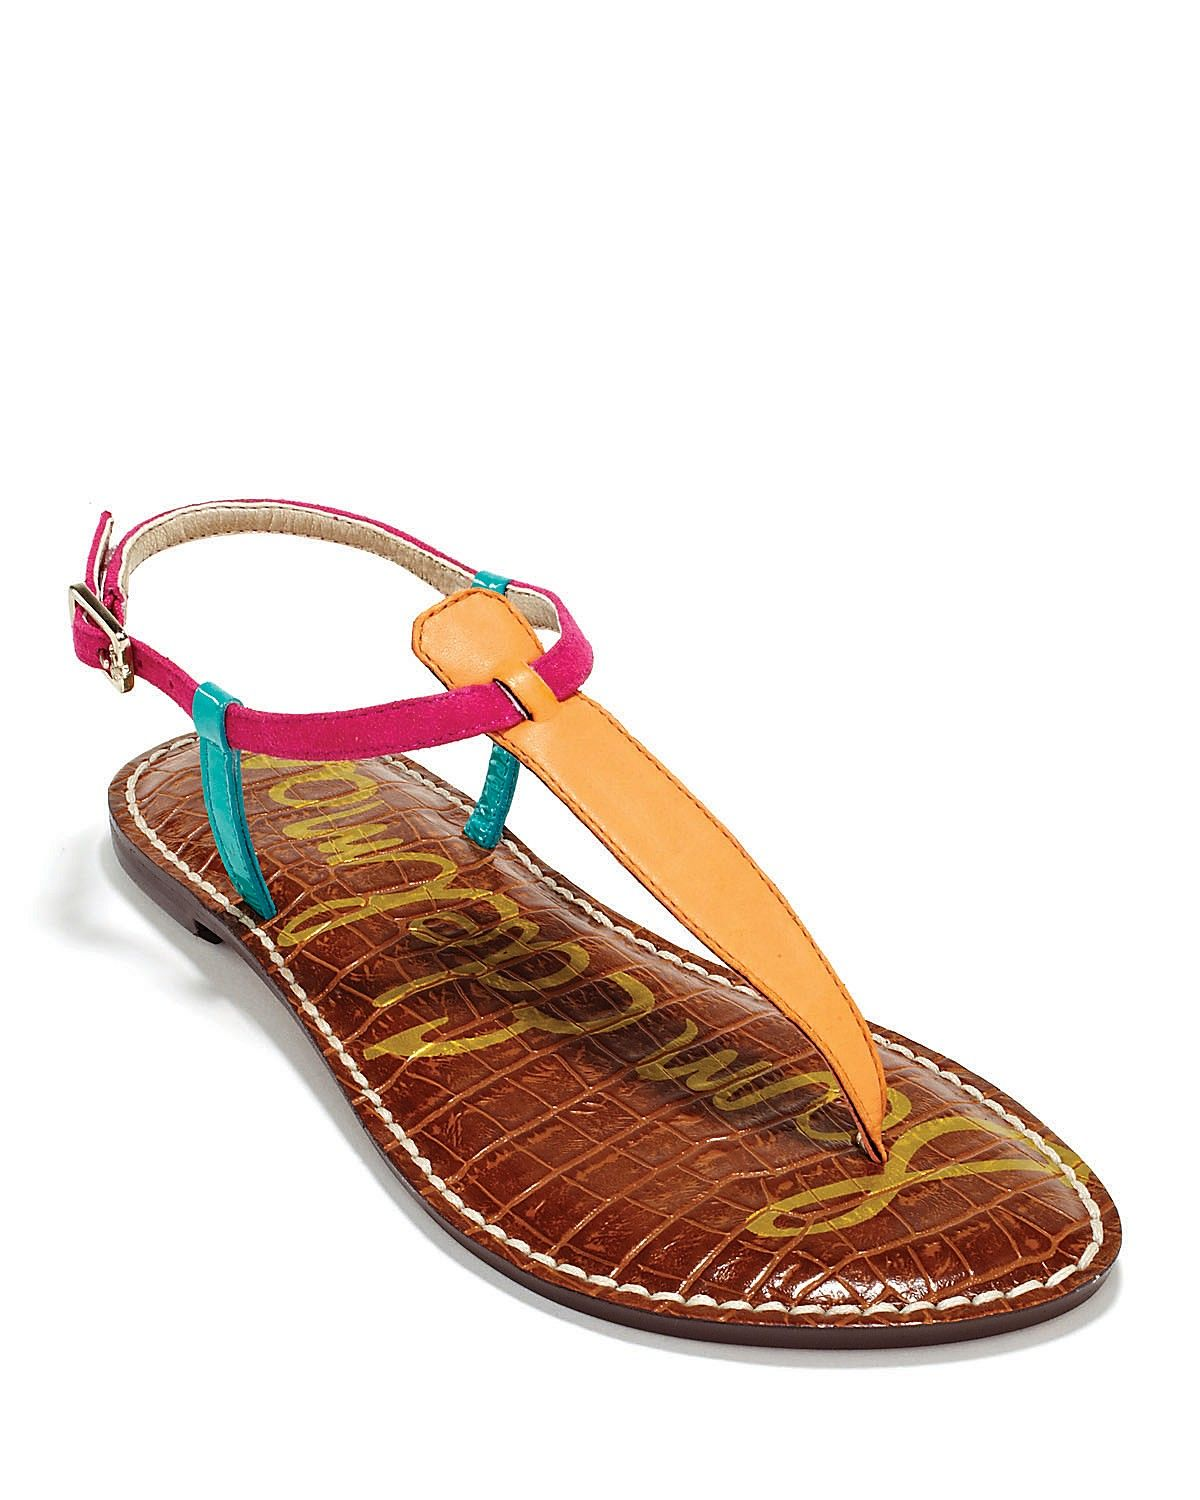 540d3d2ea0cff I always love the basic summer sandal...this Sam Edelman Gigi is so bright  and colorful!